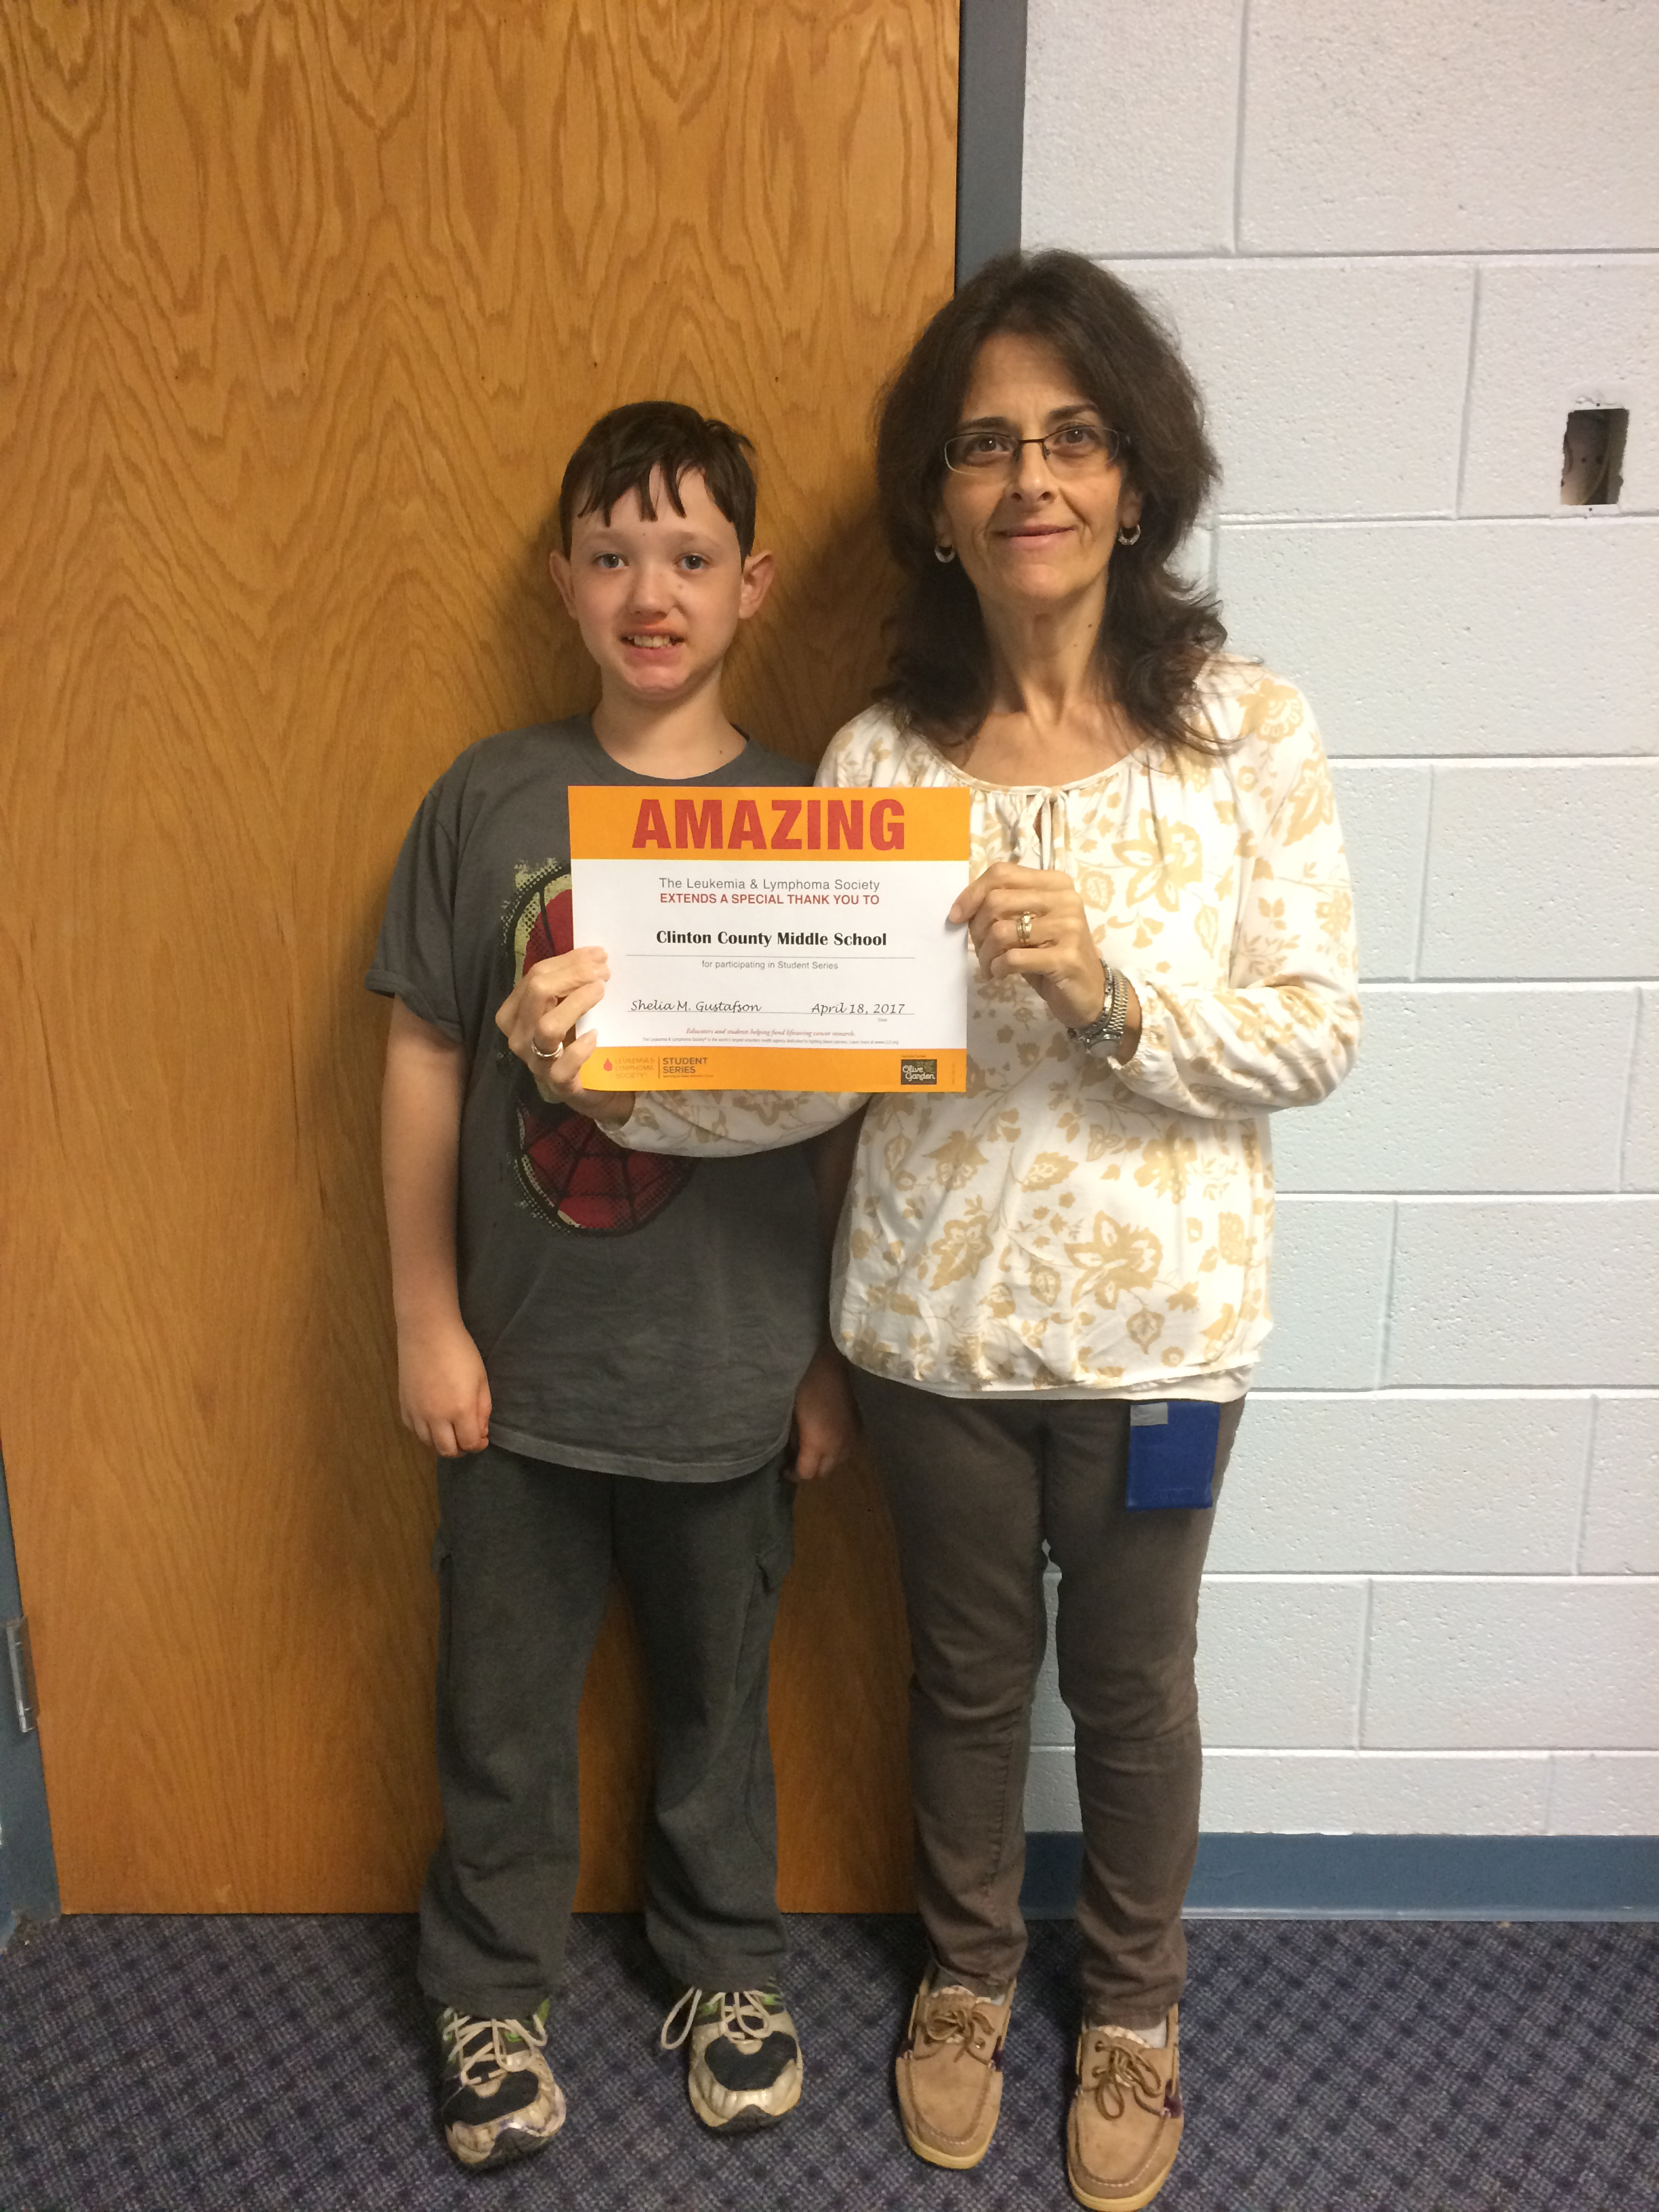 Ms. Willette Shelton and CCMS student Tyler Cross distributed and collected boxes, counted money, and kept up with the competition totals each day during Pennies for Patients.